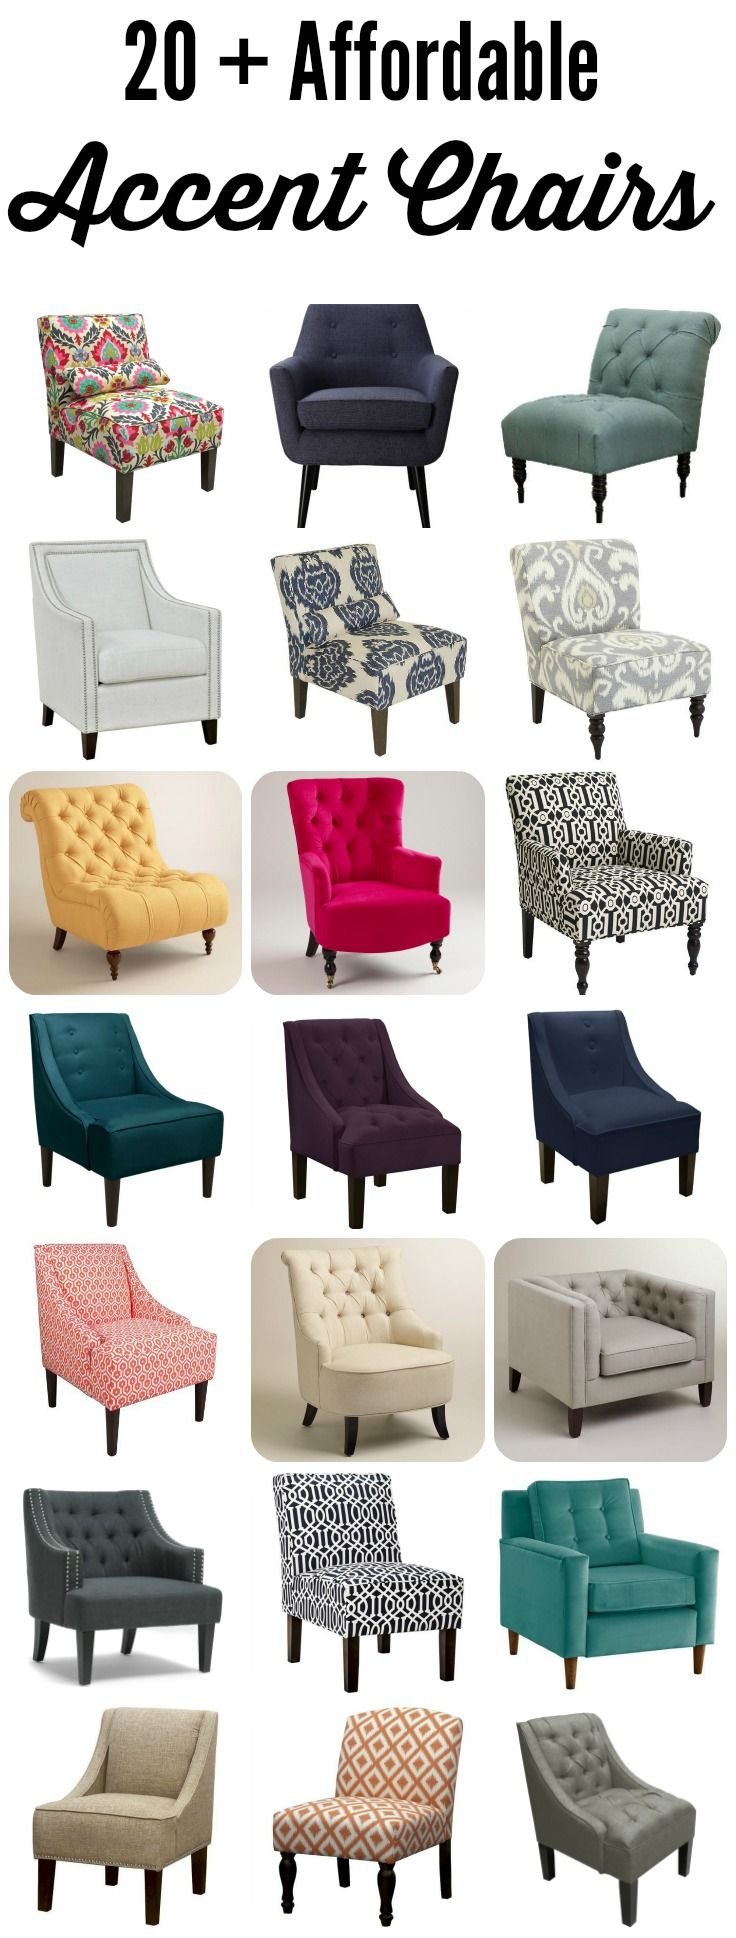 OMG, this list of more than 20 AFFORDABLE accent chairs is amazing! I can finally start making plans for my room makeover now that I can afford it!